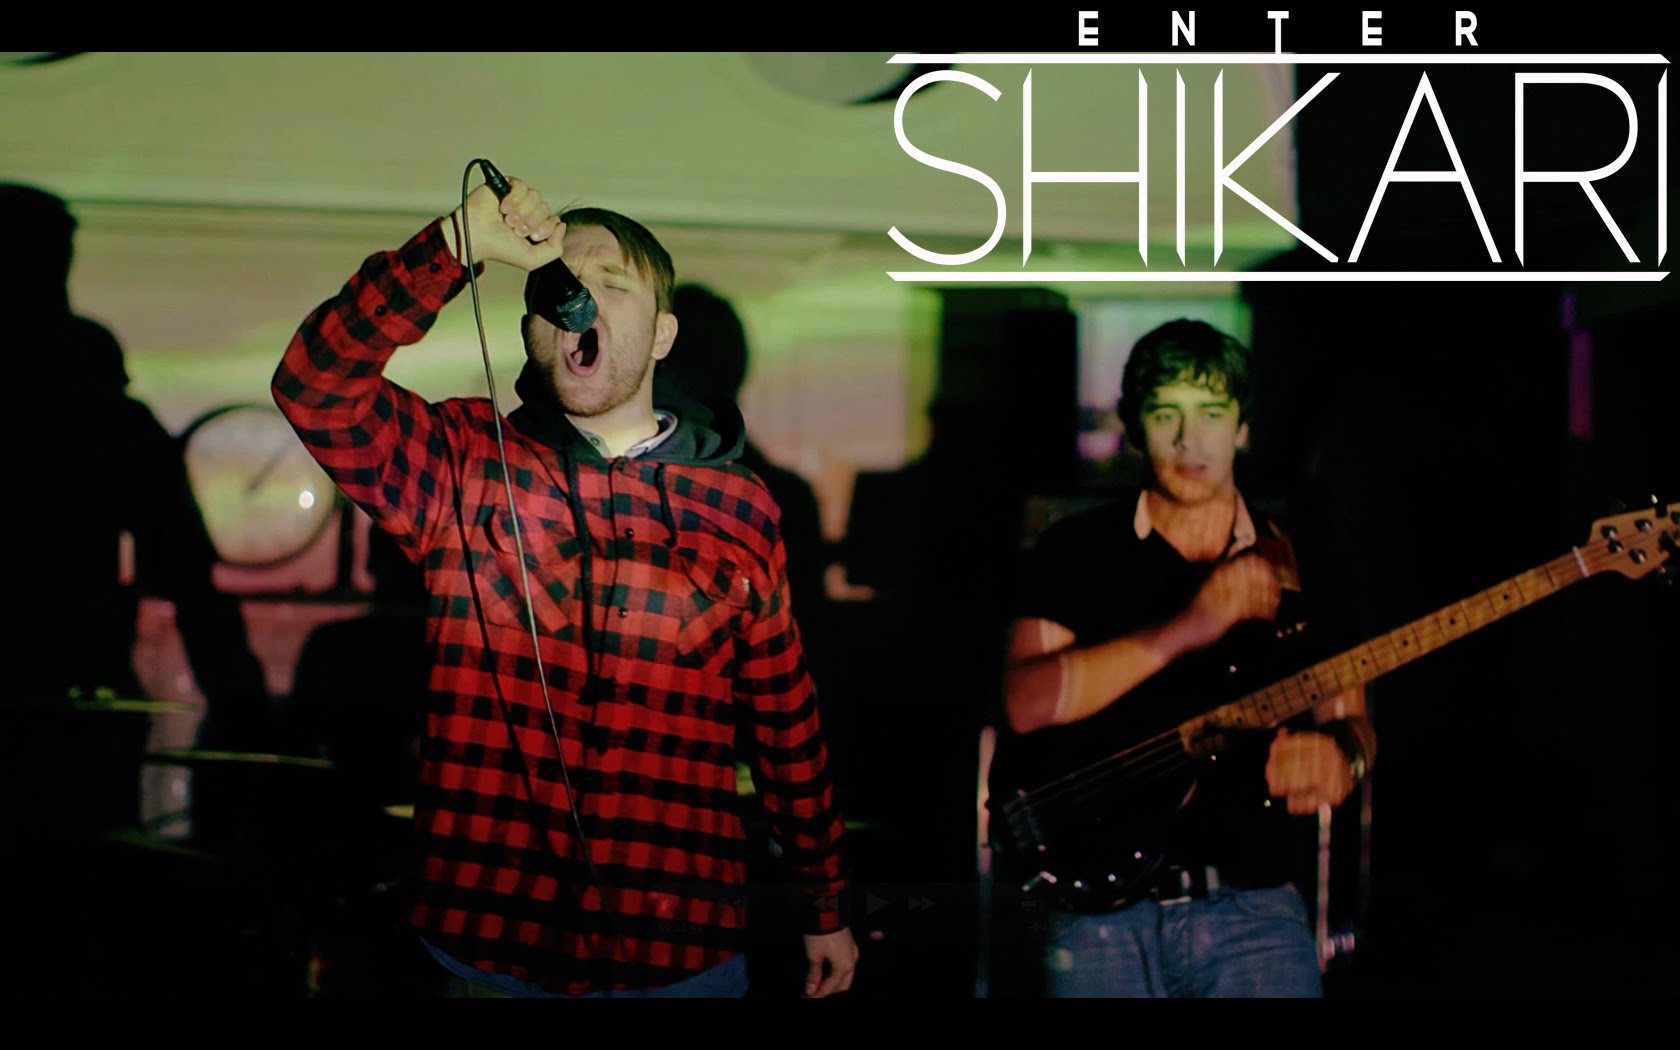 Enter Shikari - Pack Of Thieves (Official Music Video)